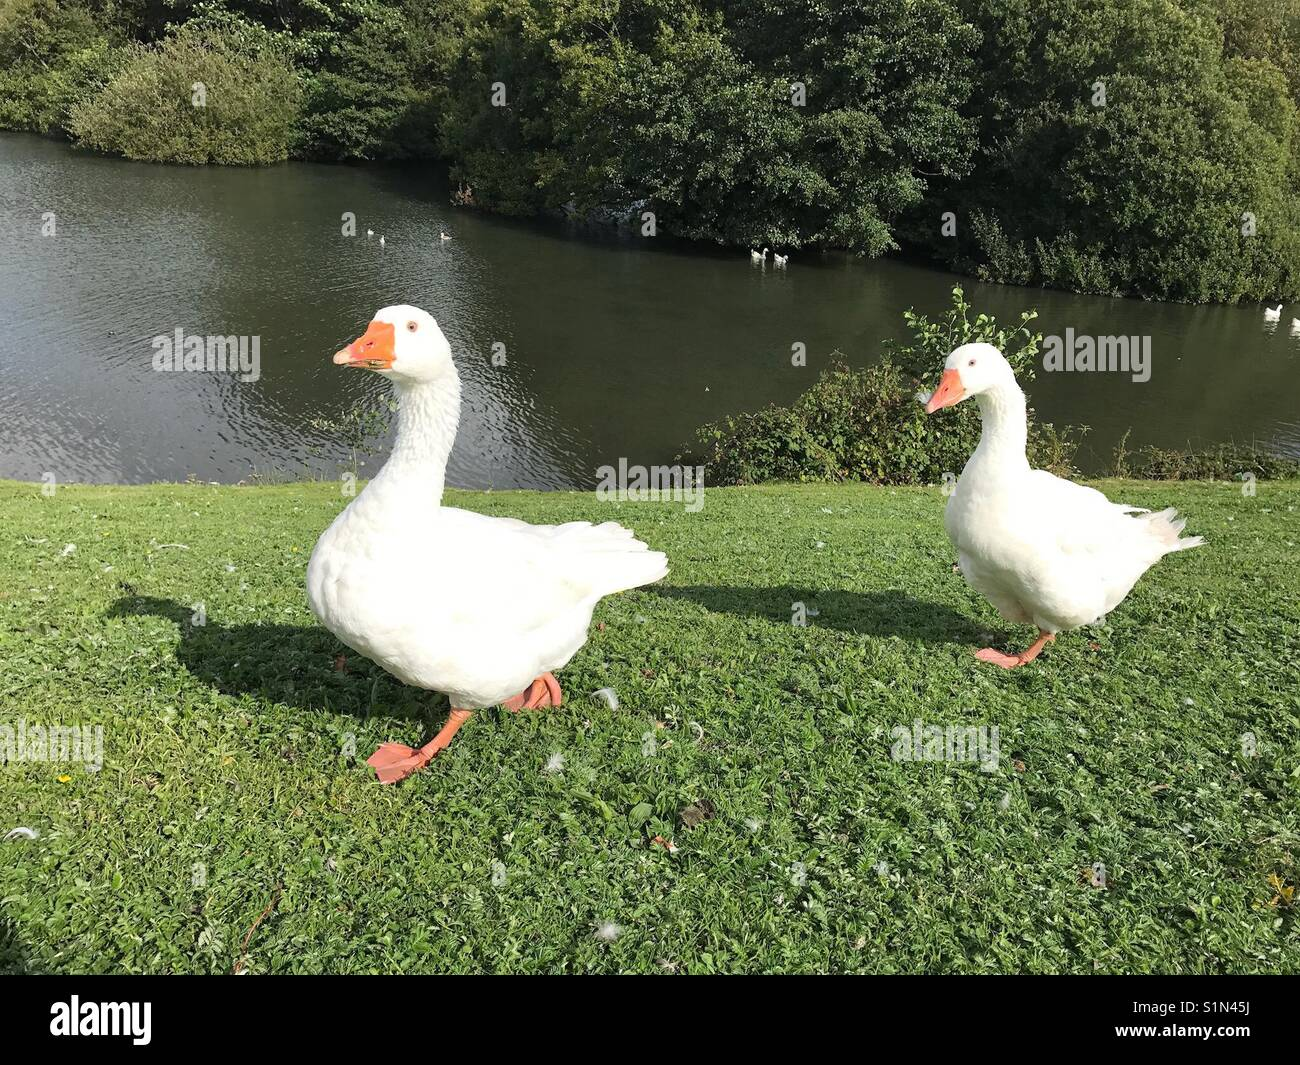 Pair of geese - Stock Image